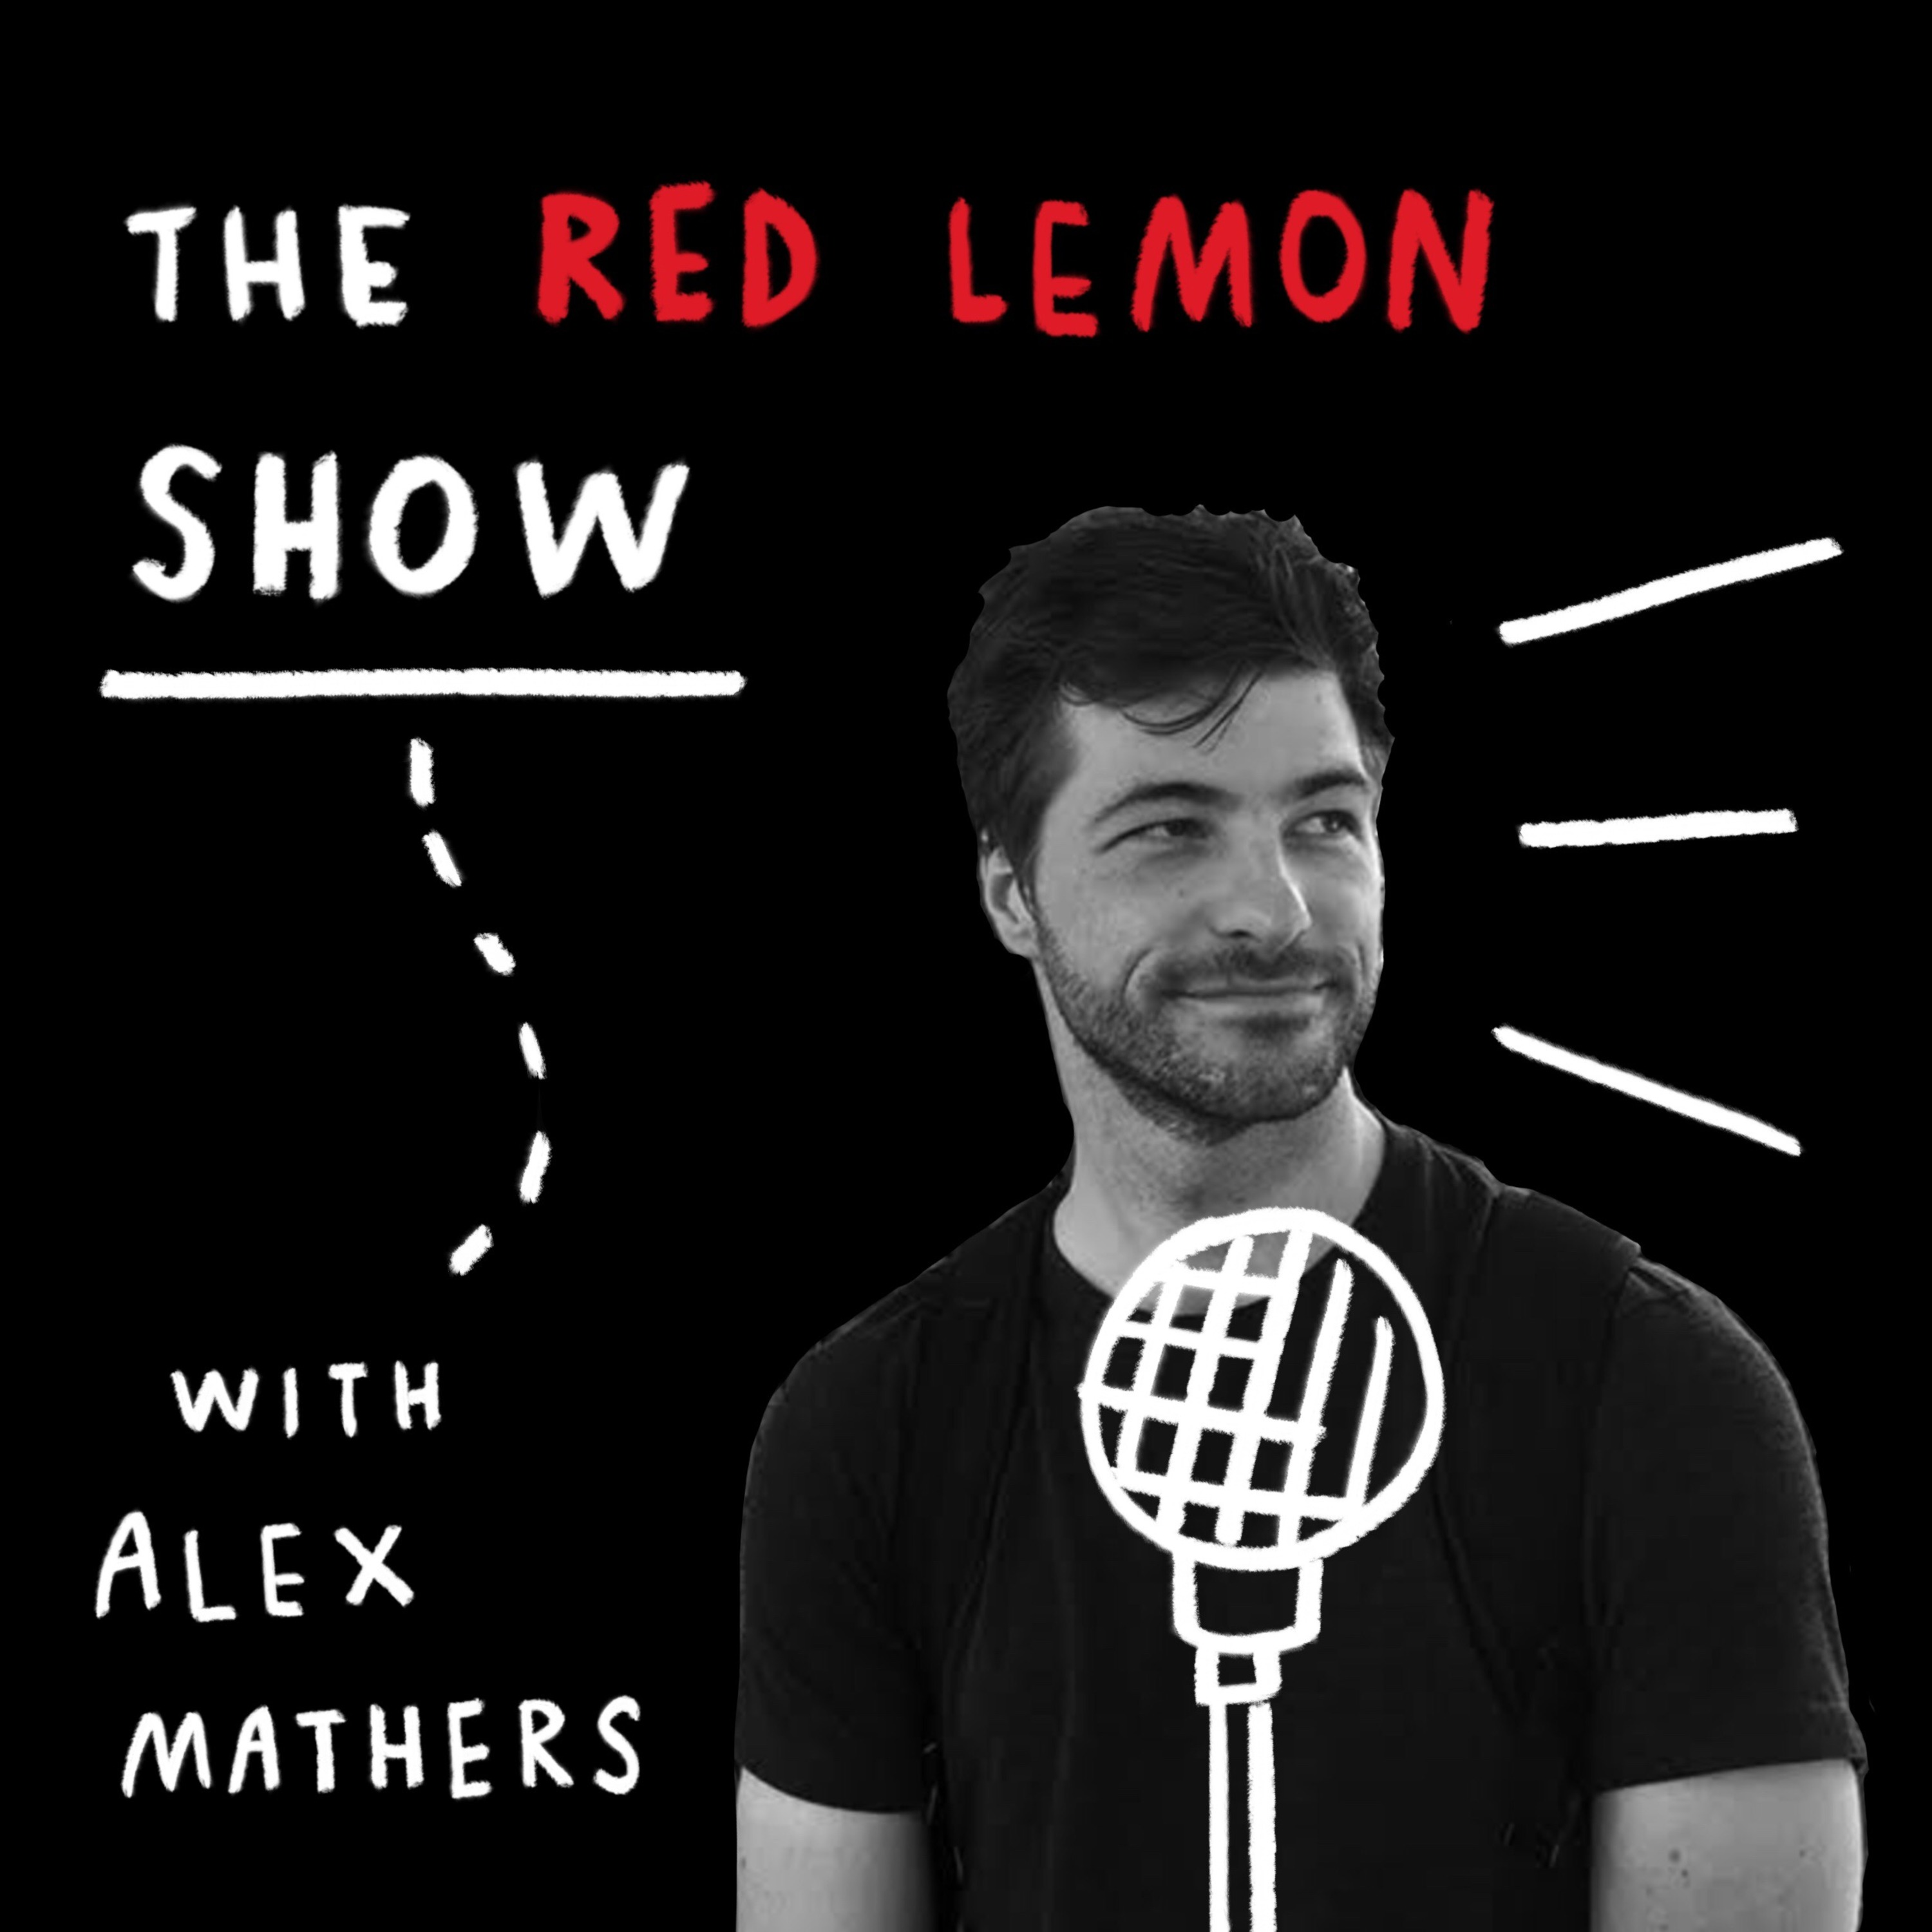 The Red Lemon Show